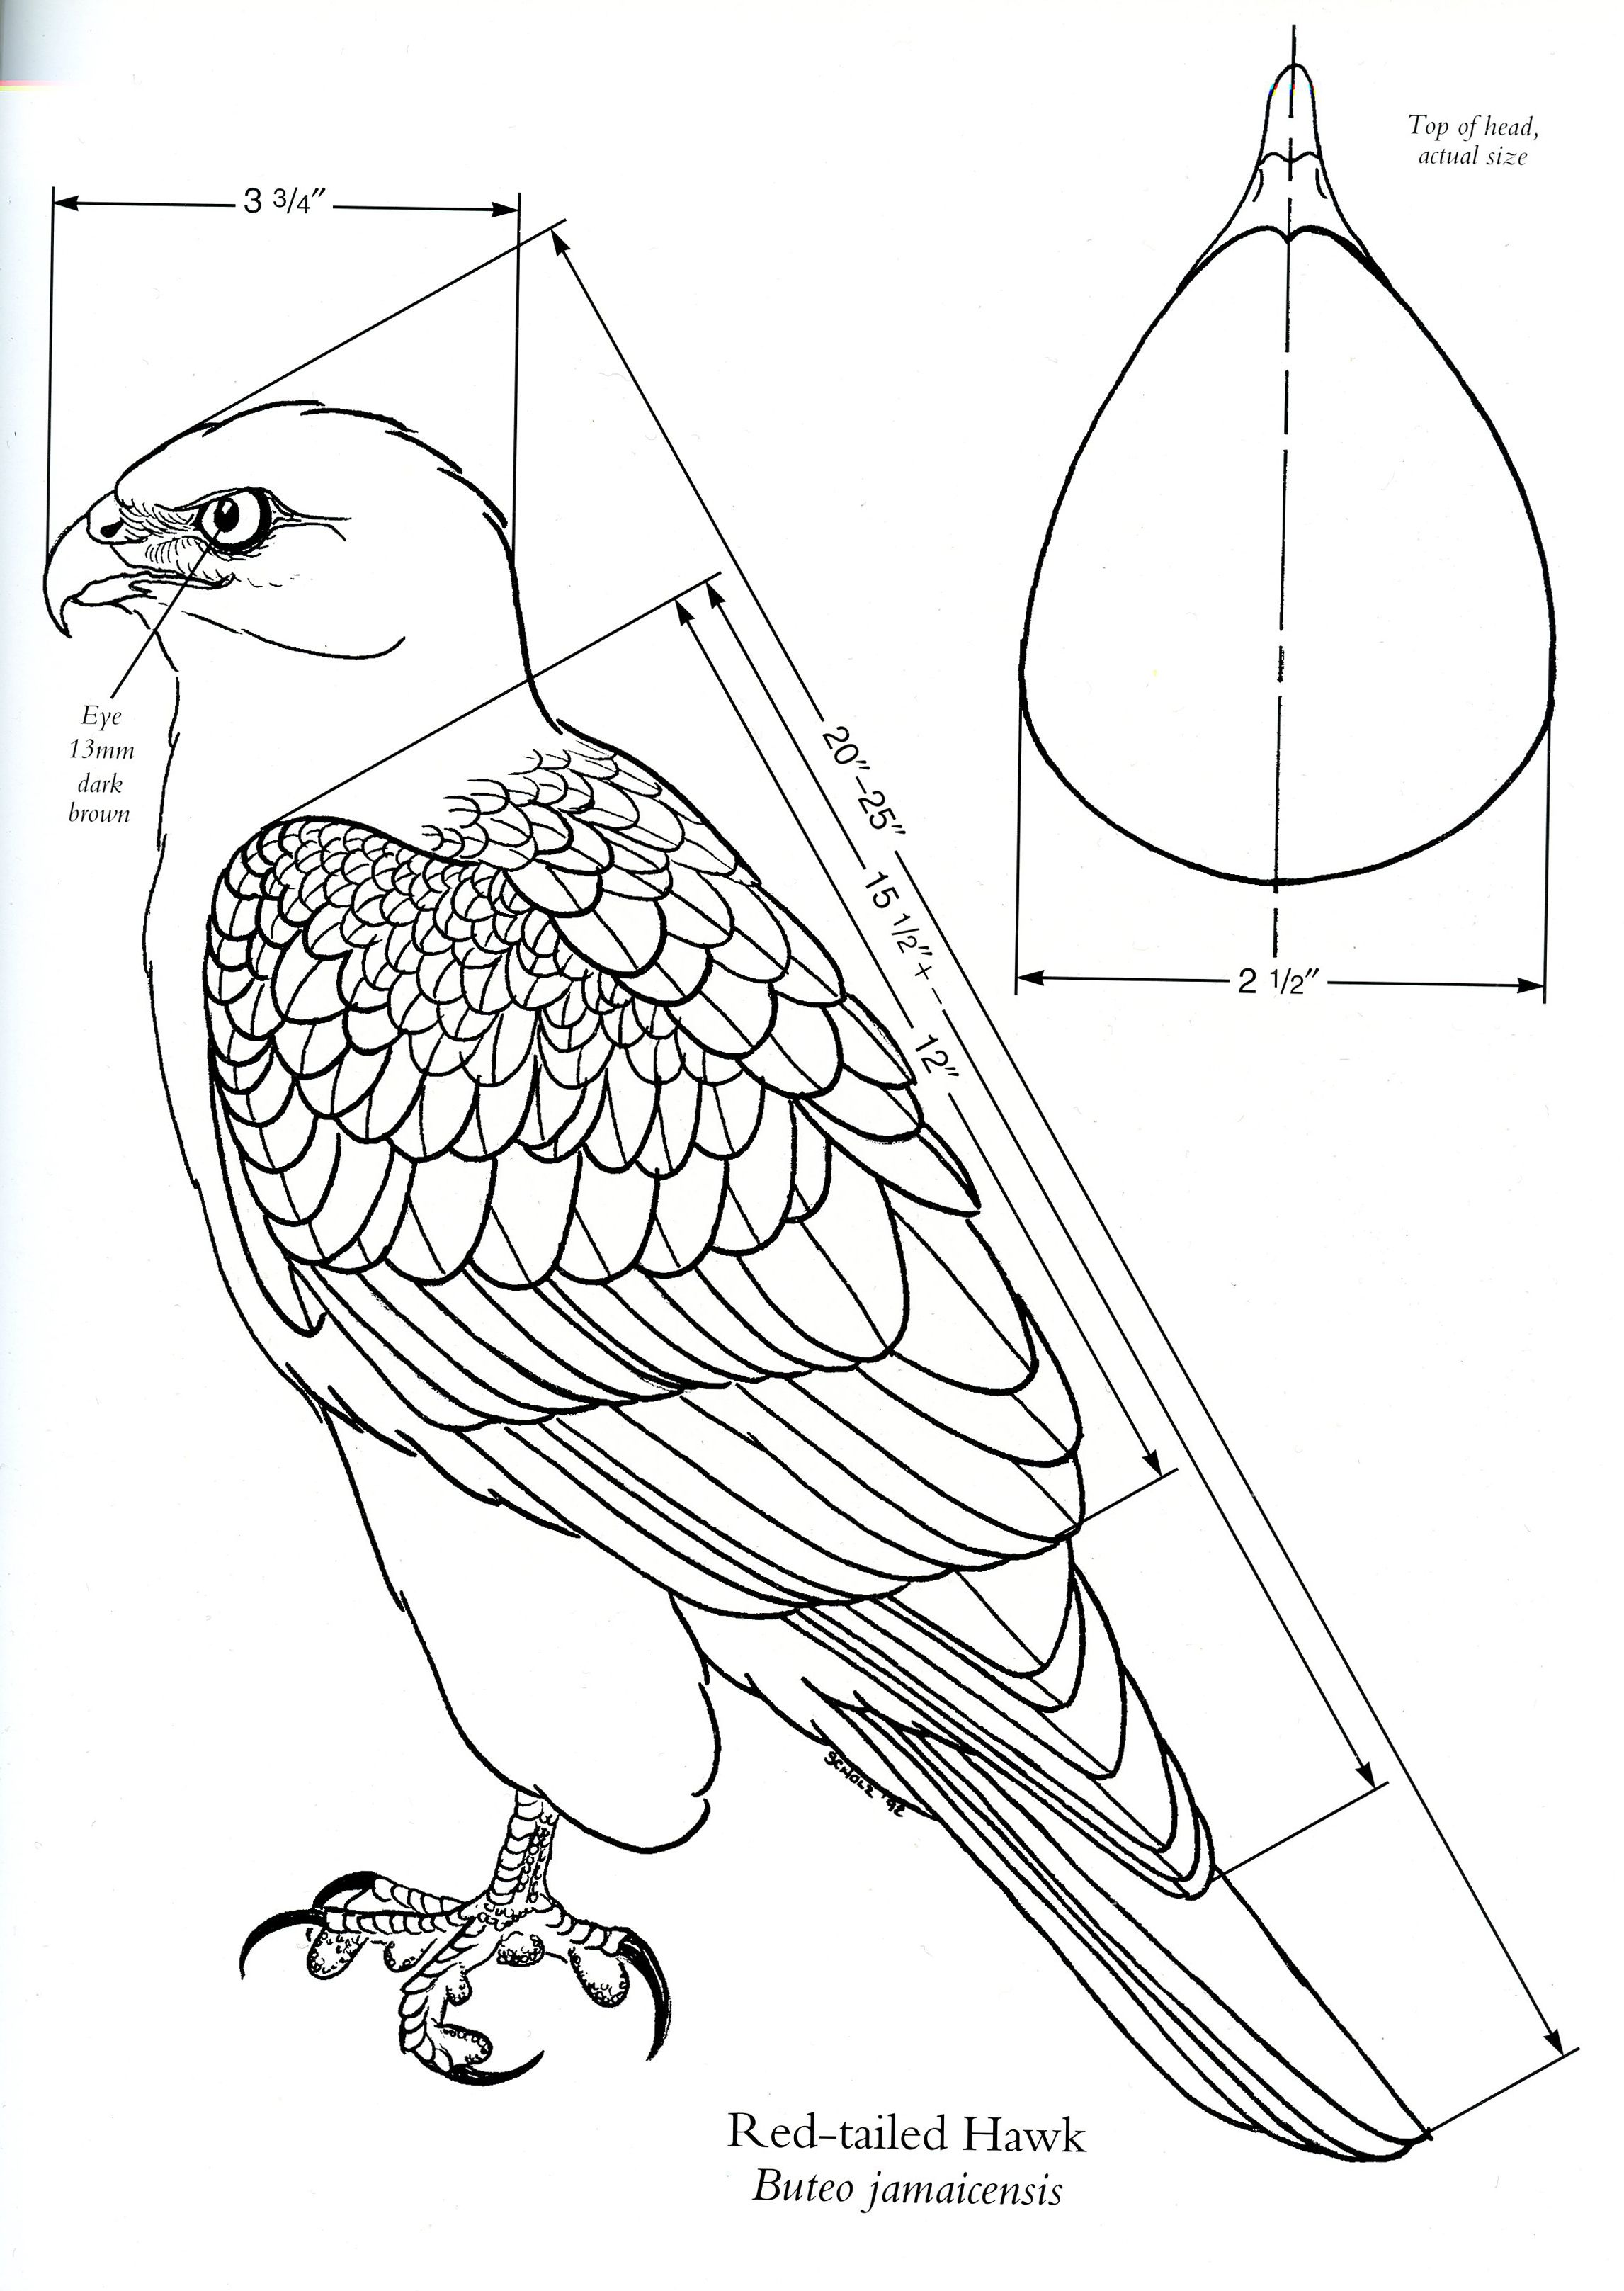 medium resolution of diagram of a red tailed hawk source birds of prey by floyd scholz diagram wild turkey diagram of hawk